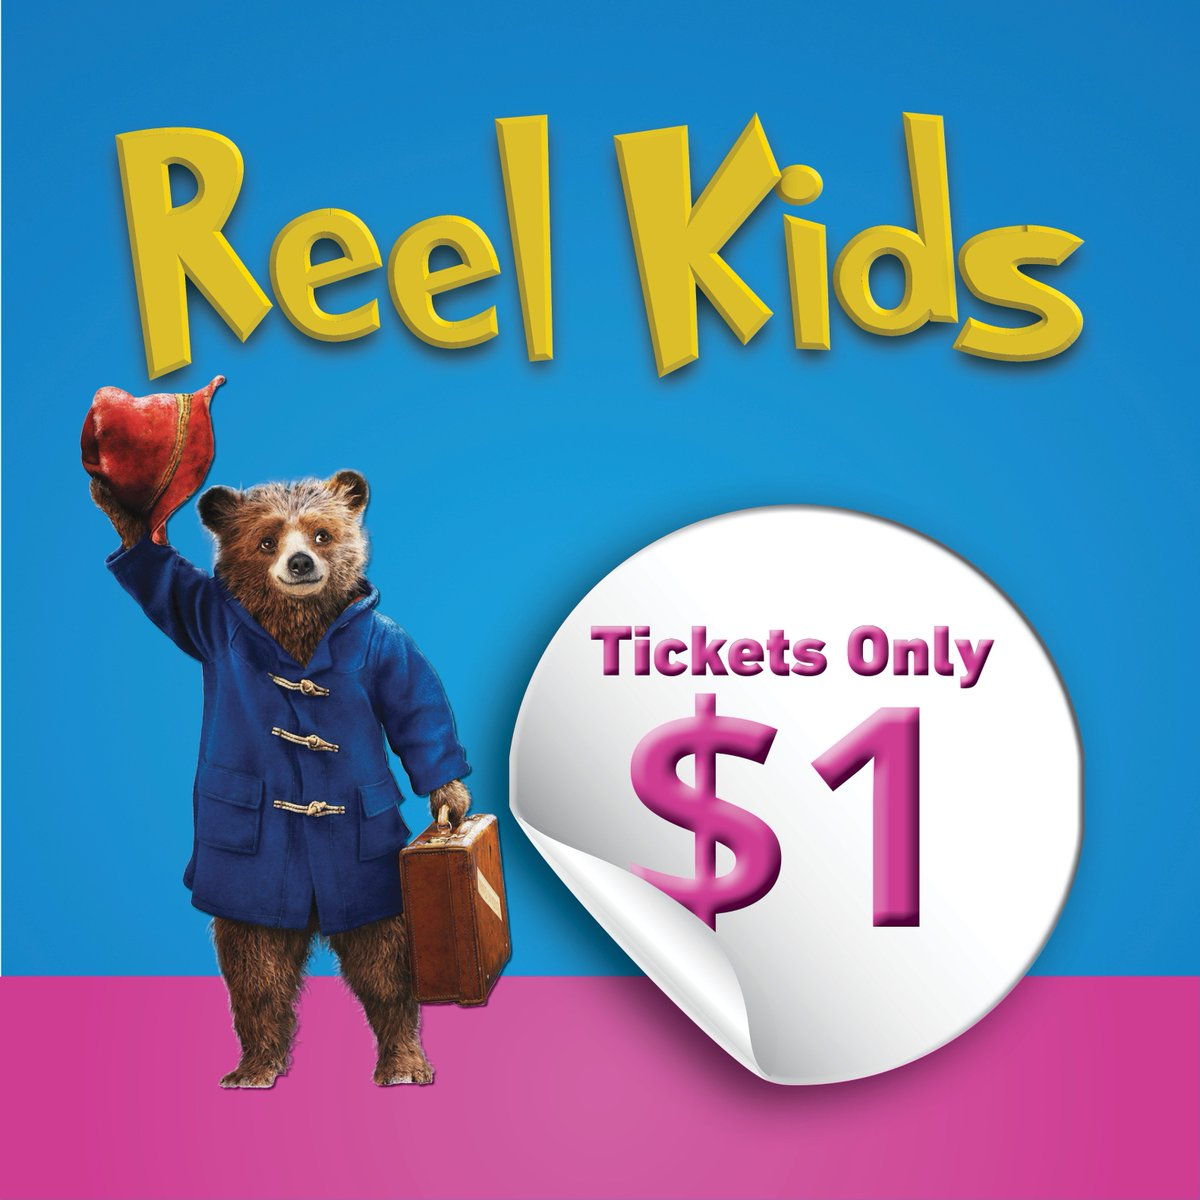 """""""Aunt Lucy said, if we are kind and polite the world will be right"""" Celebrate kindness with your family tomorrow or Thursday at 10 am with PADDINGTON for just $1 !! Tickets on our website.  #midweekmovies #children #paddington2 #summermoviespic.twitter.com/BAHx60Ir4f"""